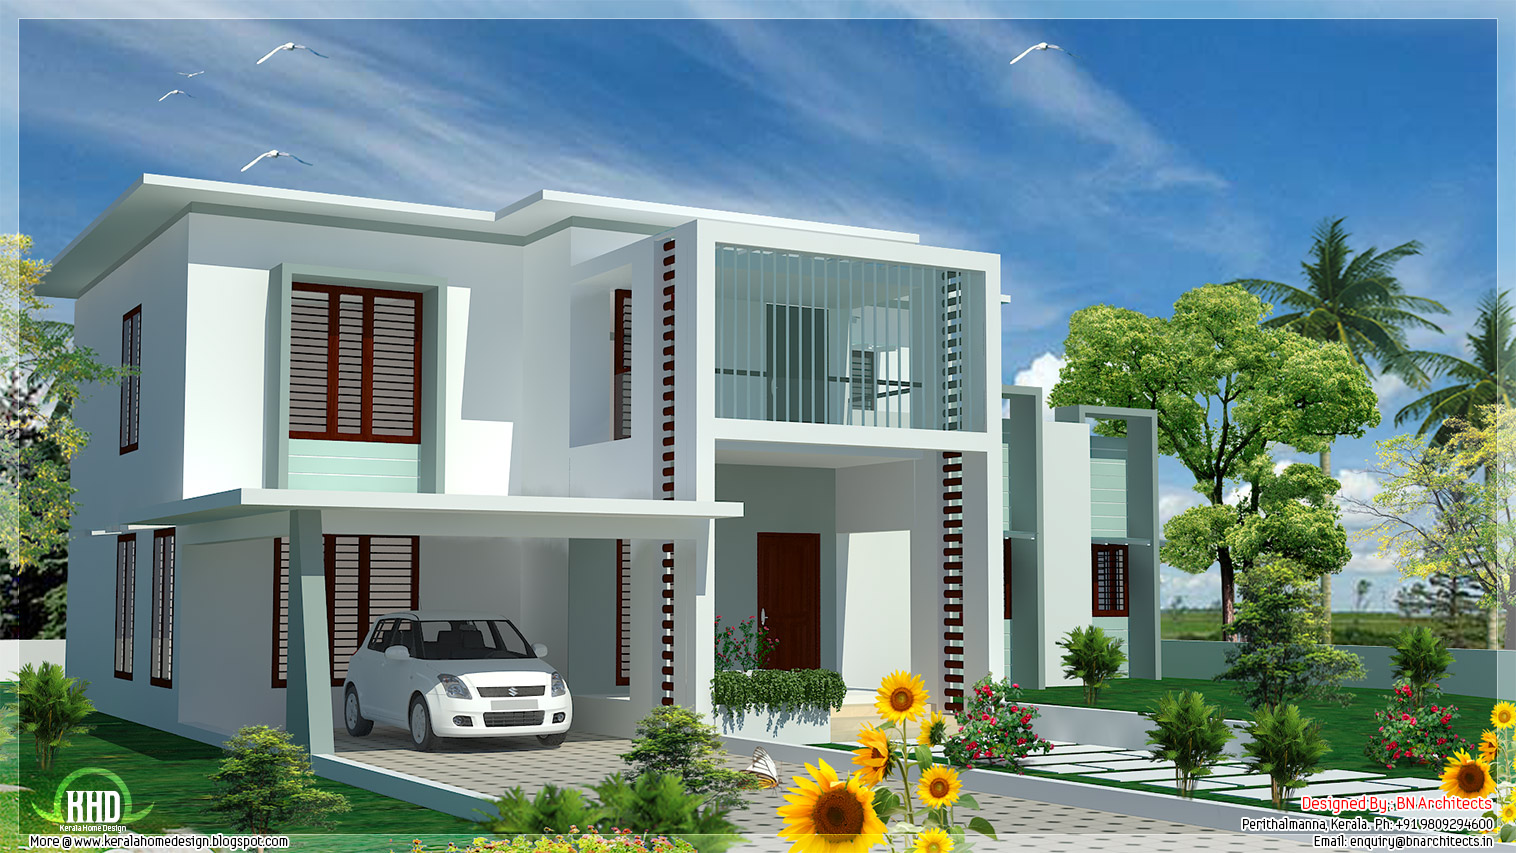 4 bedroom modern flat roof house kerala home design and for House 4